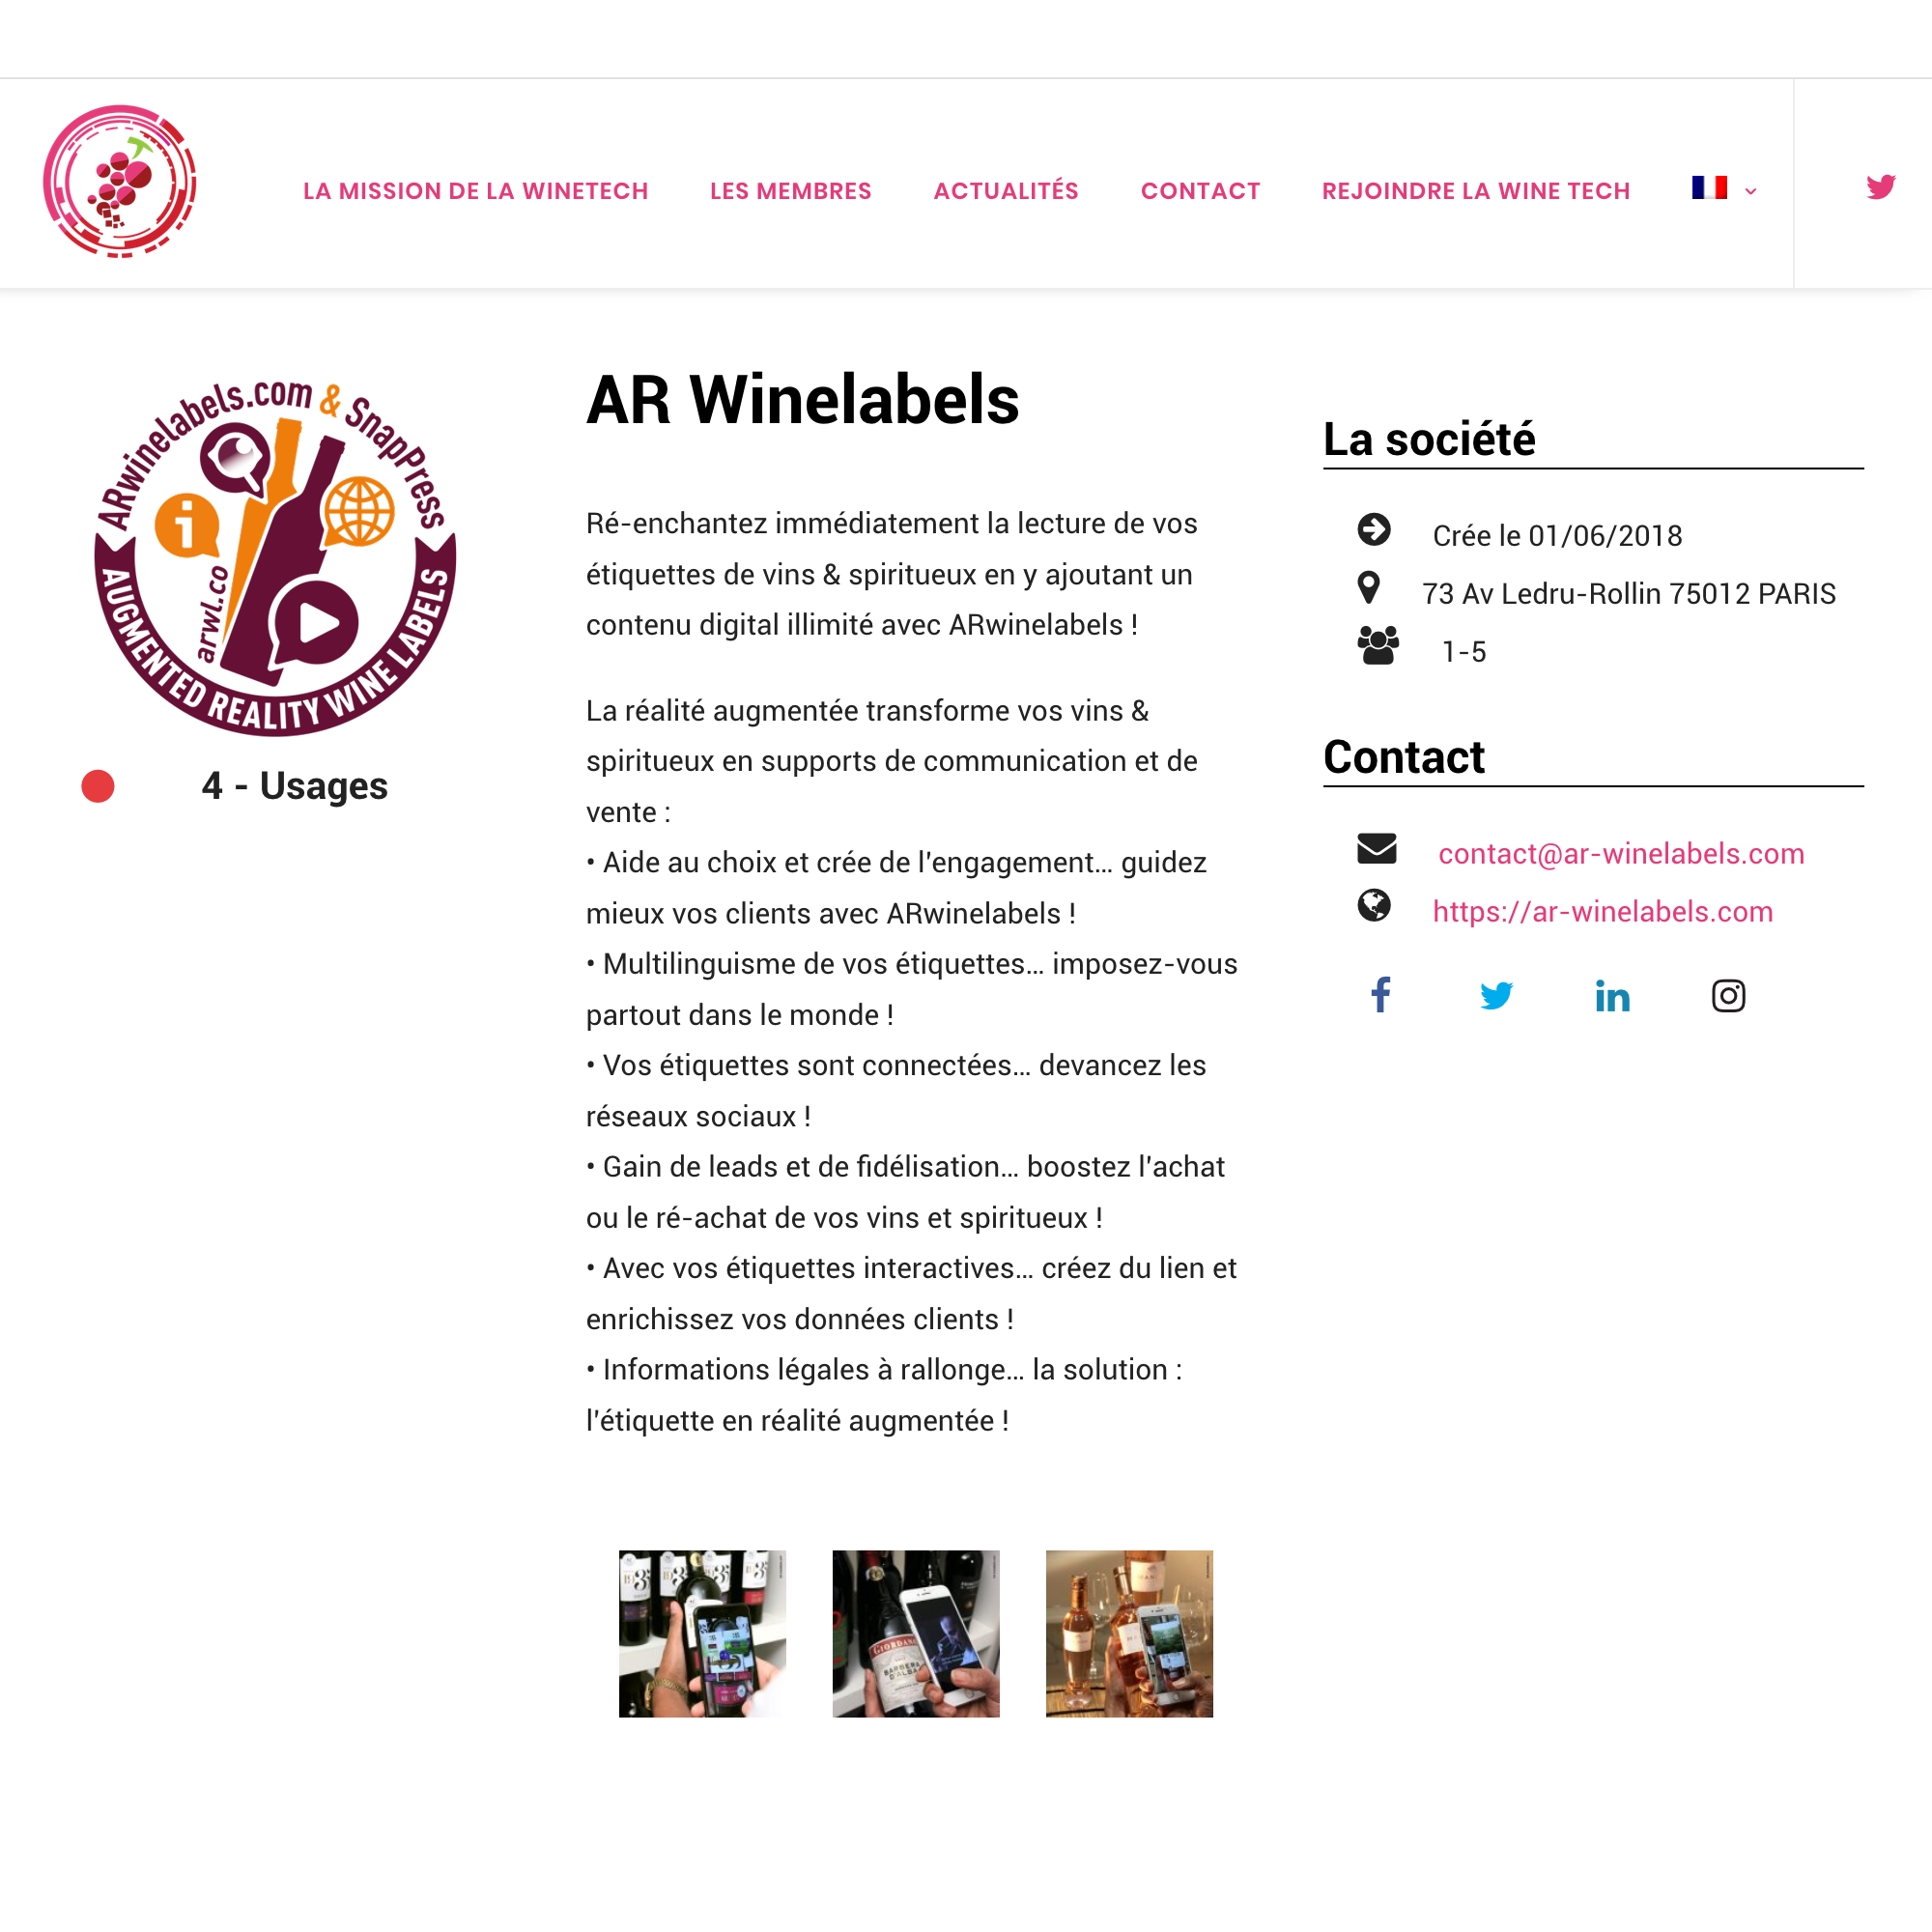 http://ar-winelabels.com/The